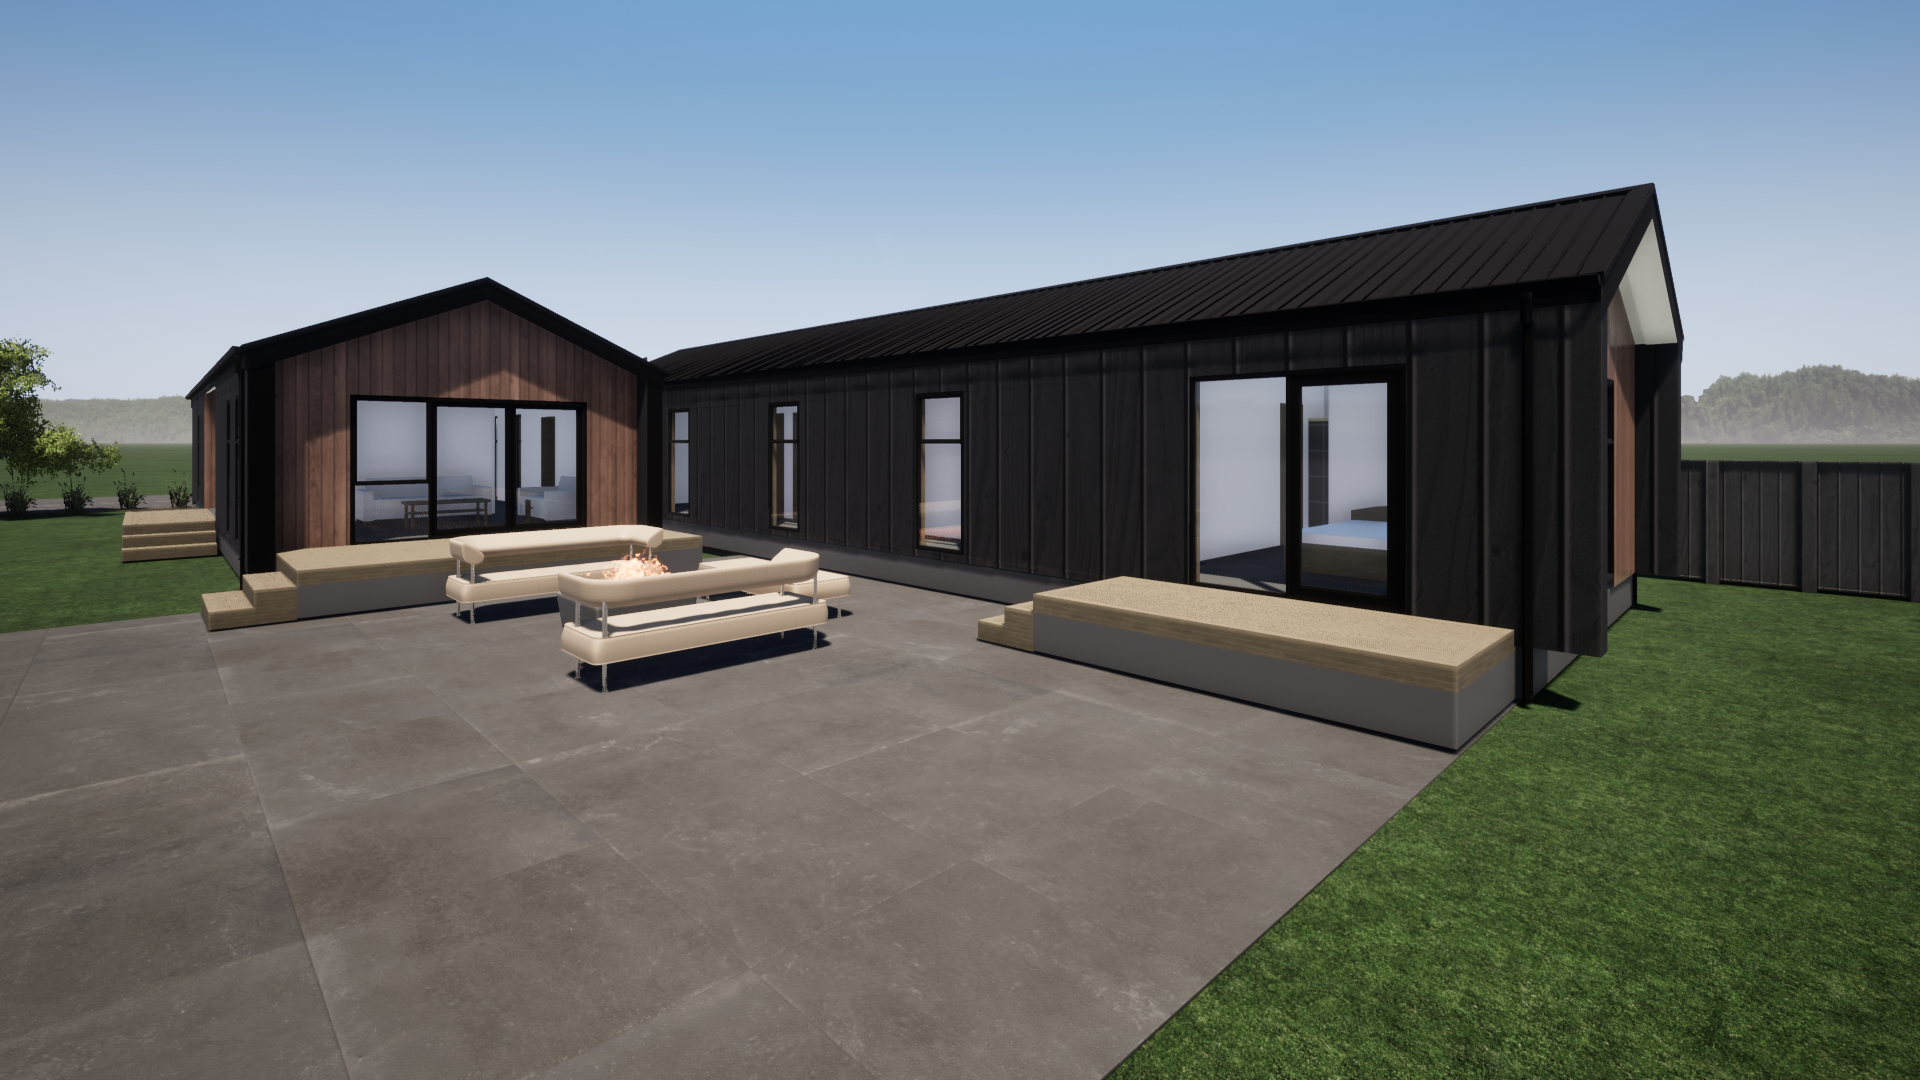 4 bedroom house design NZ